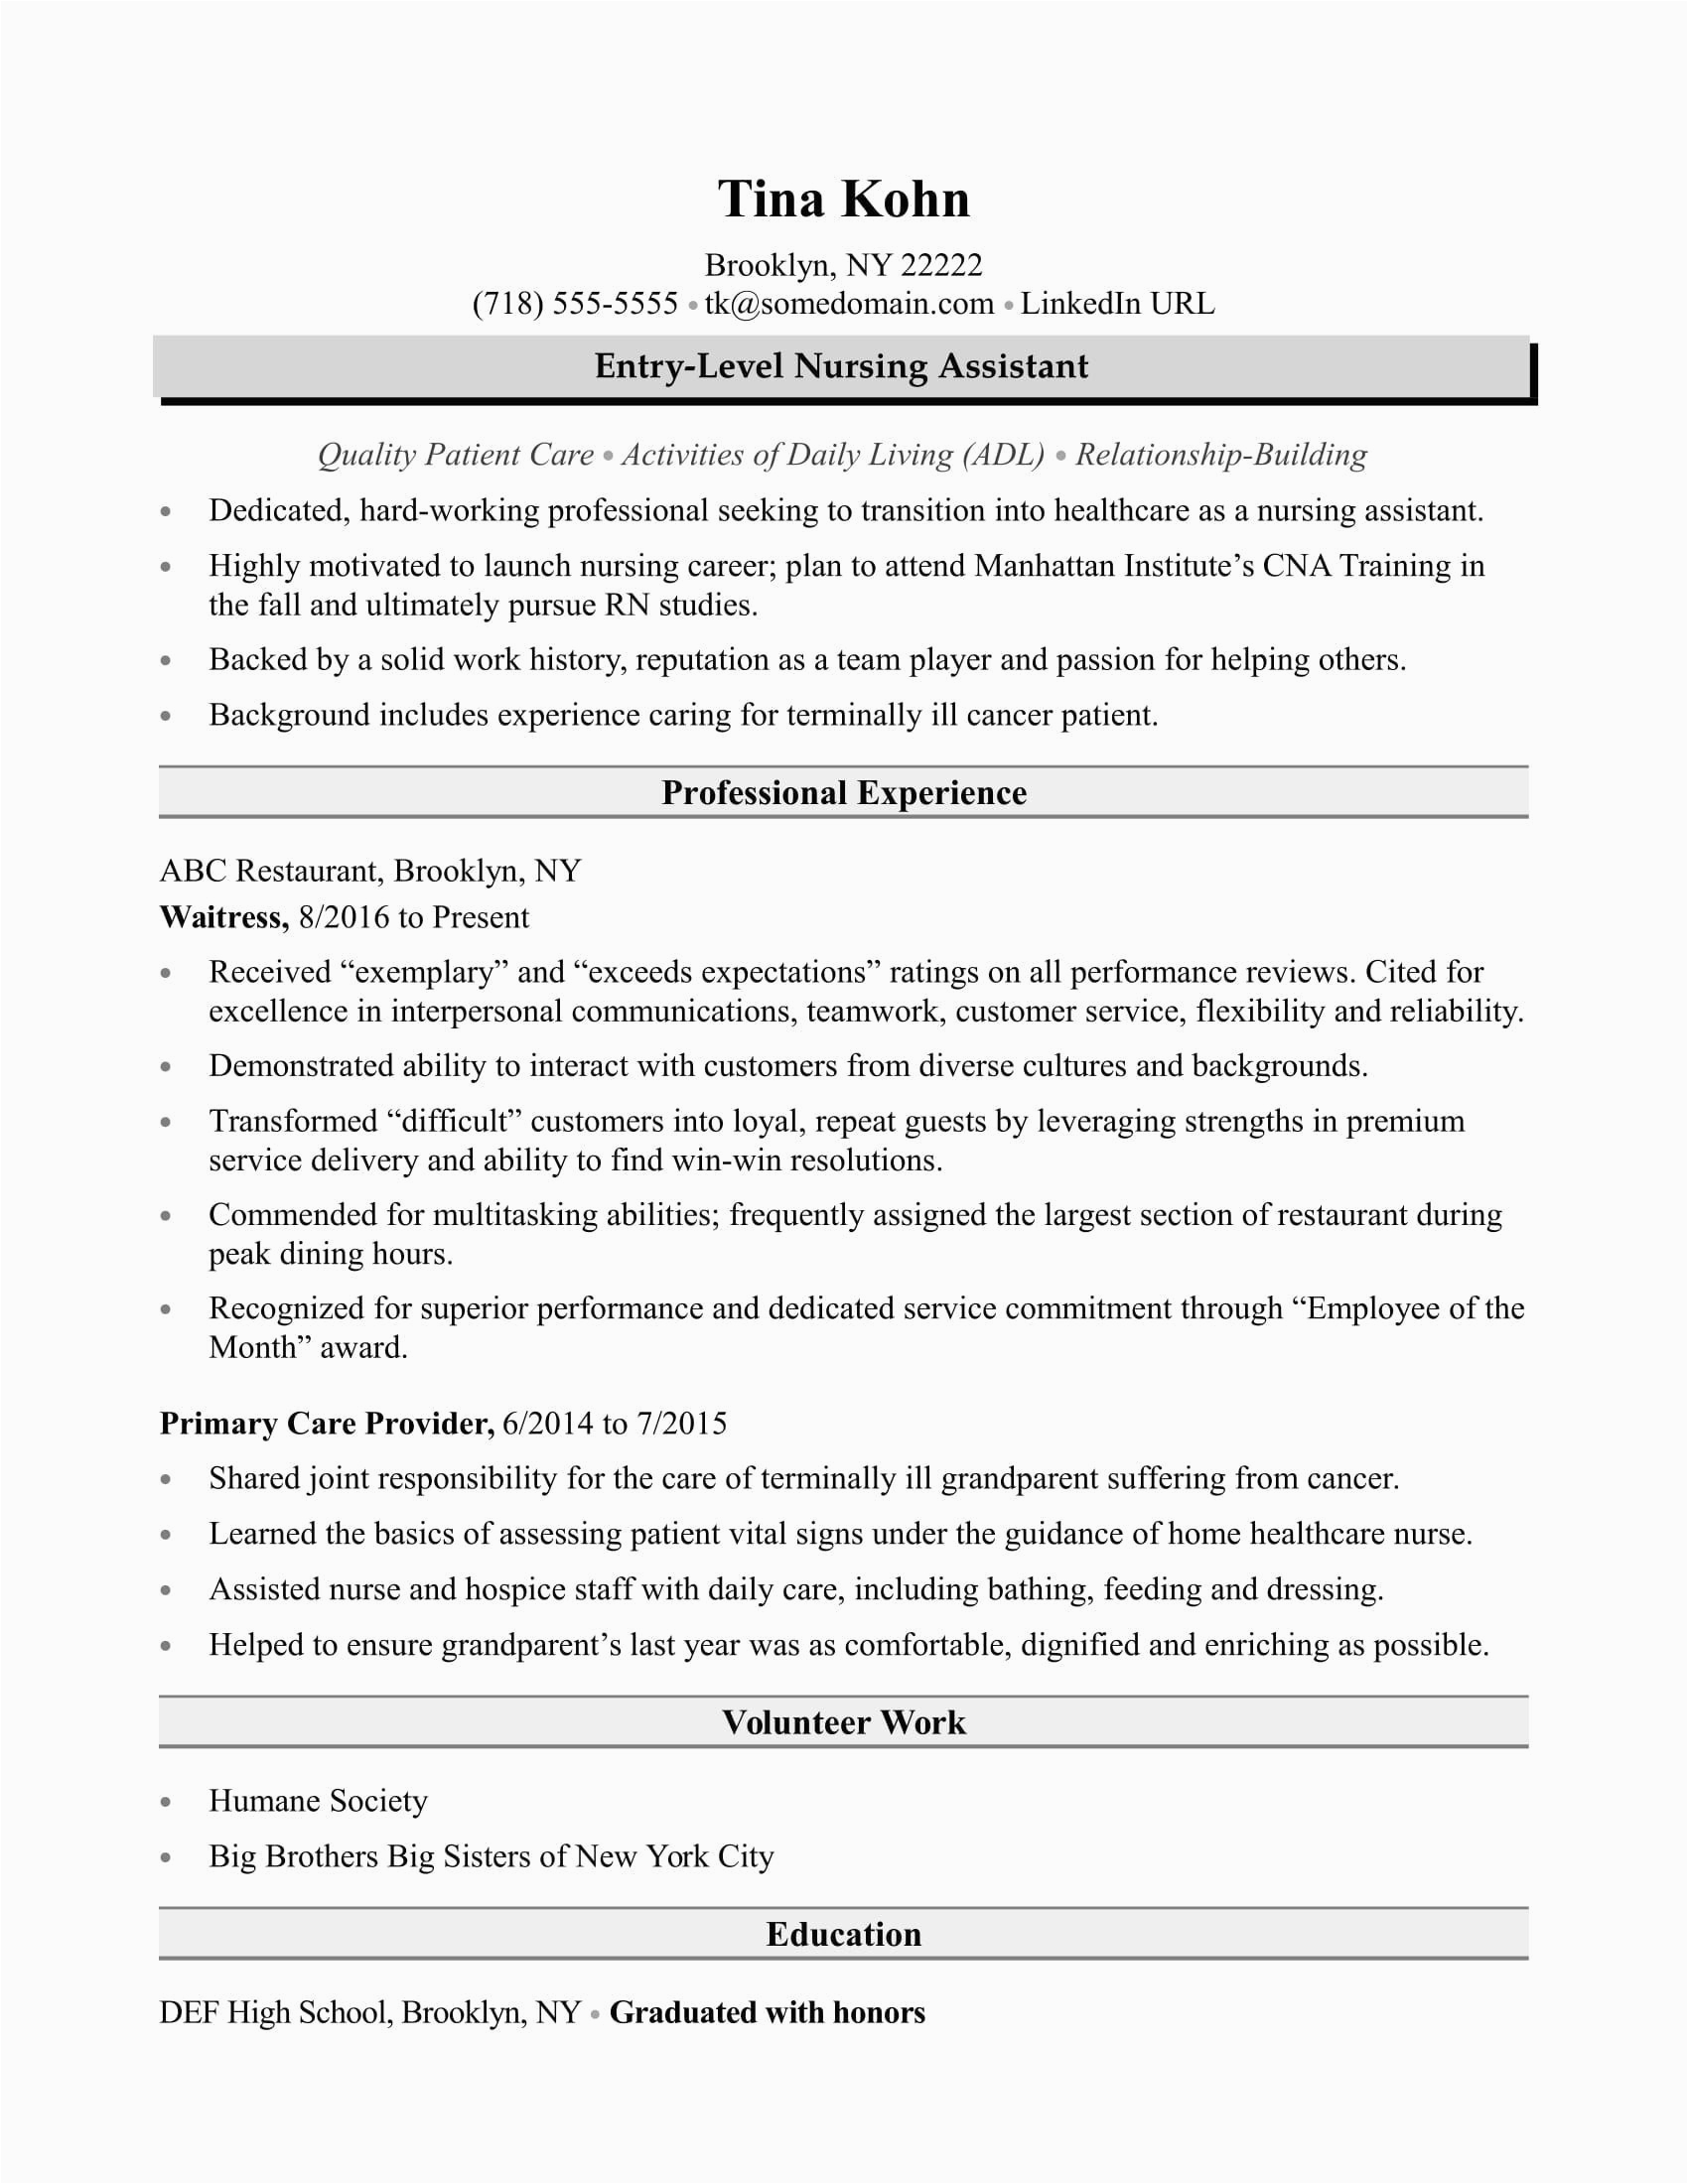 new grad rn resume with no experience template